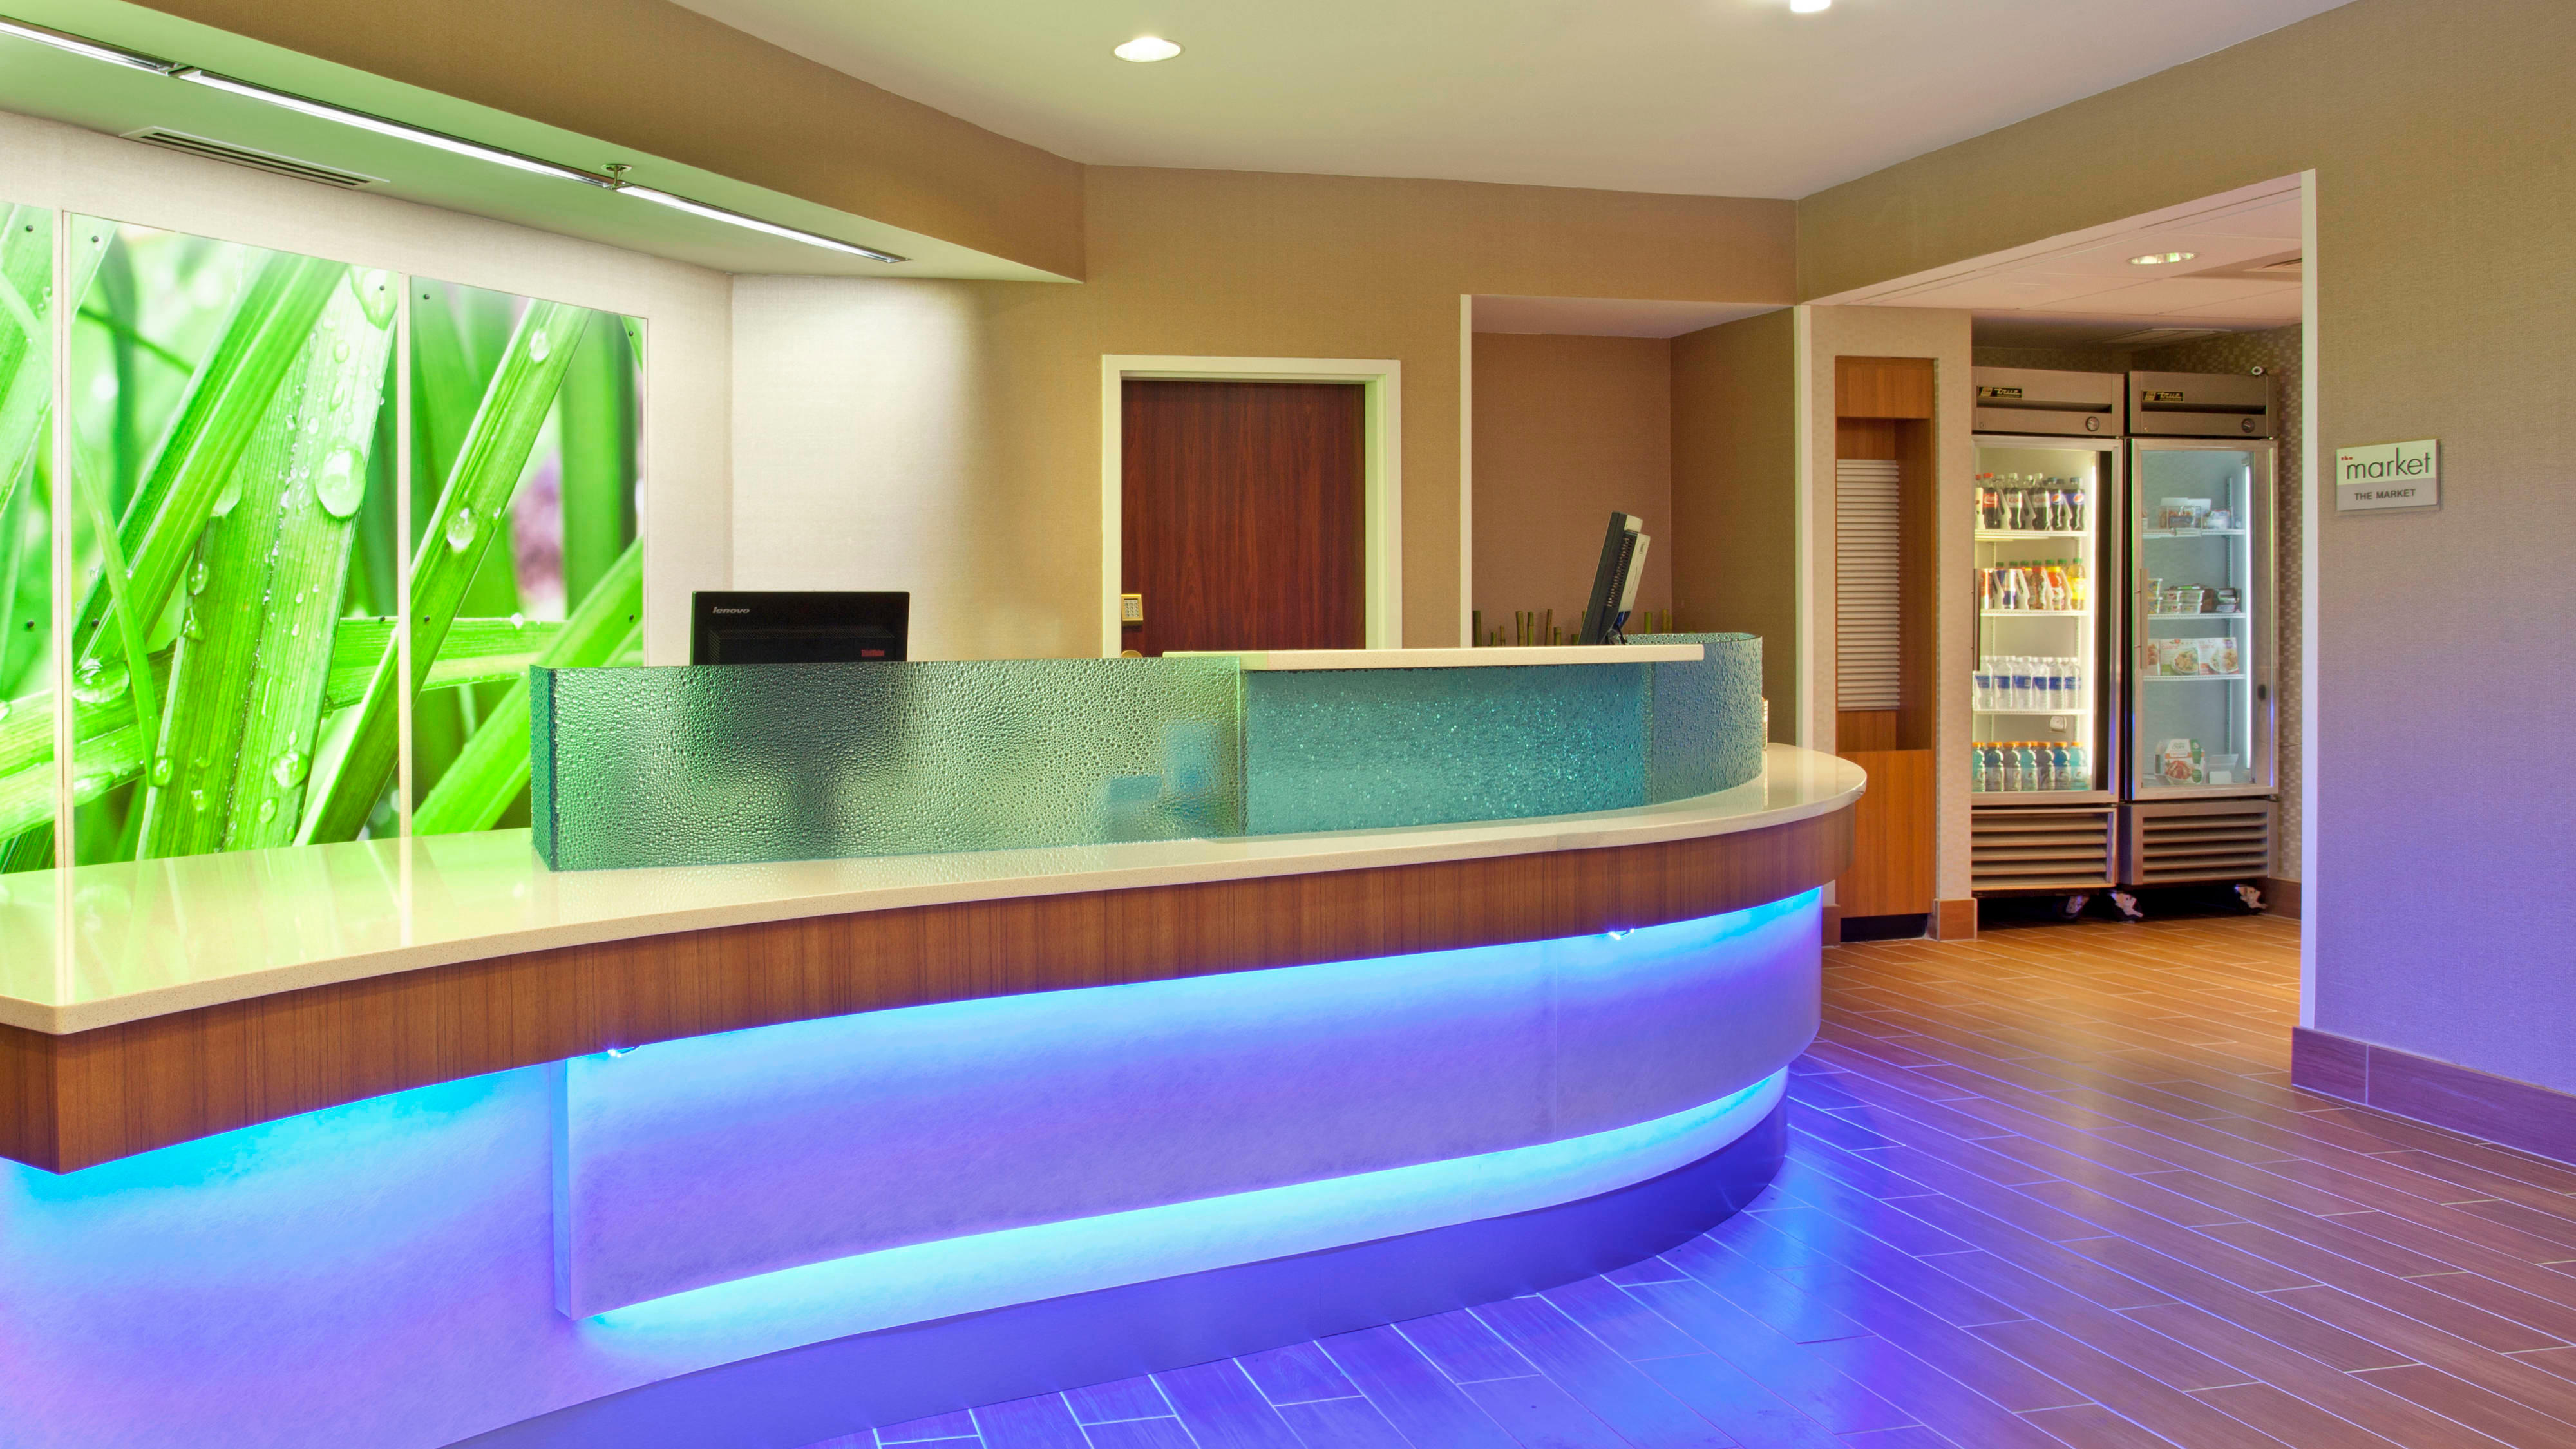 SpringHill Suites by Marriott Baton Rouge South image 5